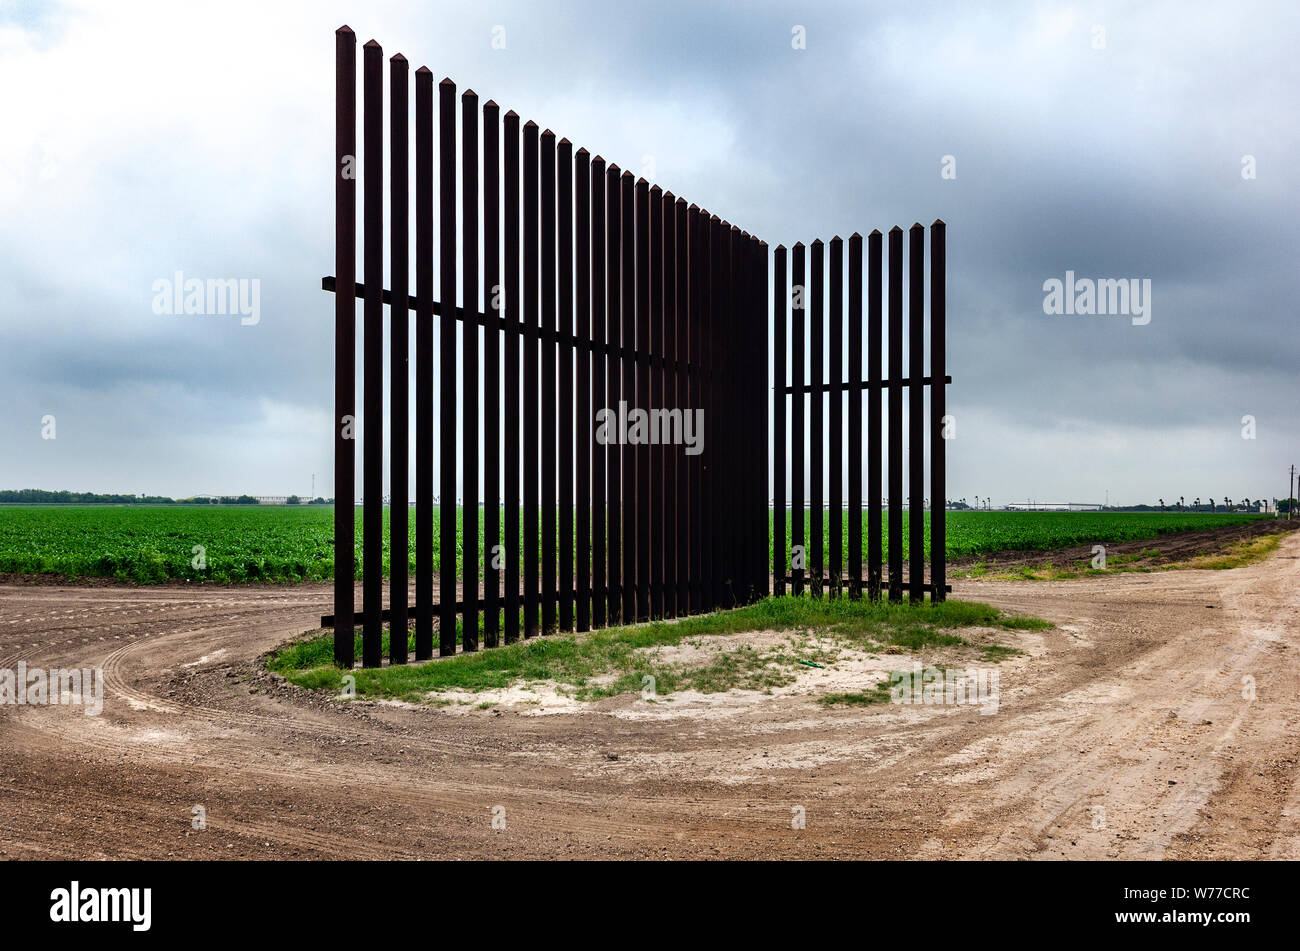 Young corn stalks grow in a field near a section of the border fence in Los Indios not far from the International bridge in Los Indios, TX, USA Stock Photo